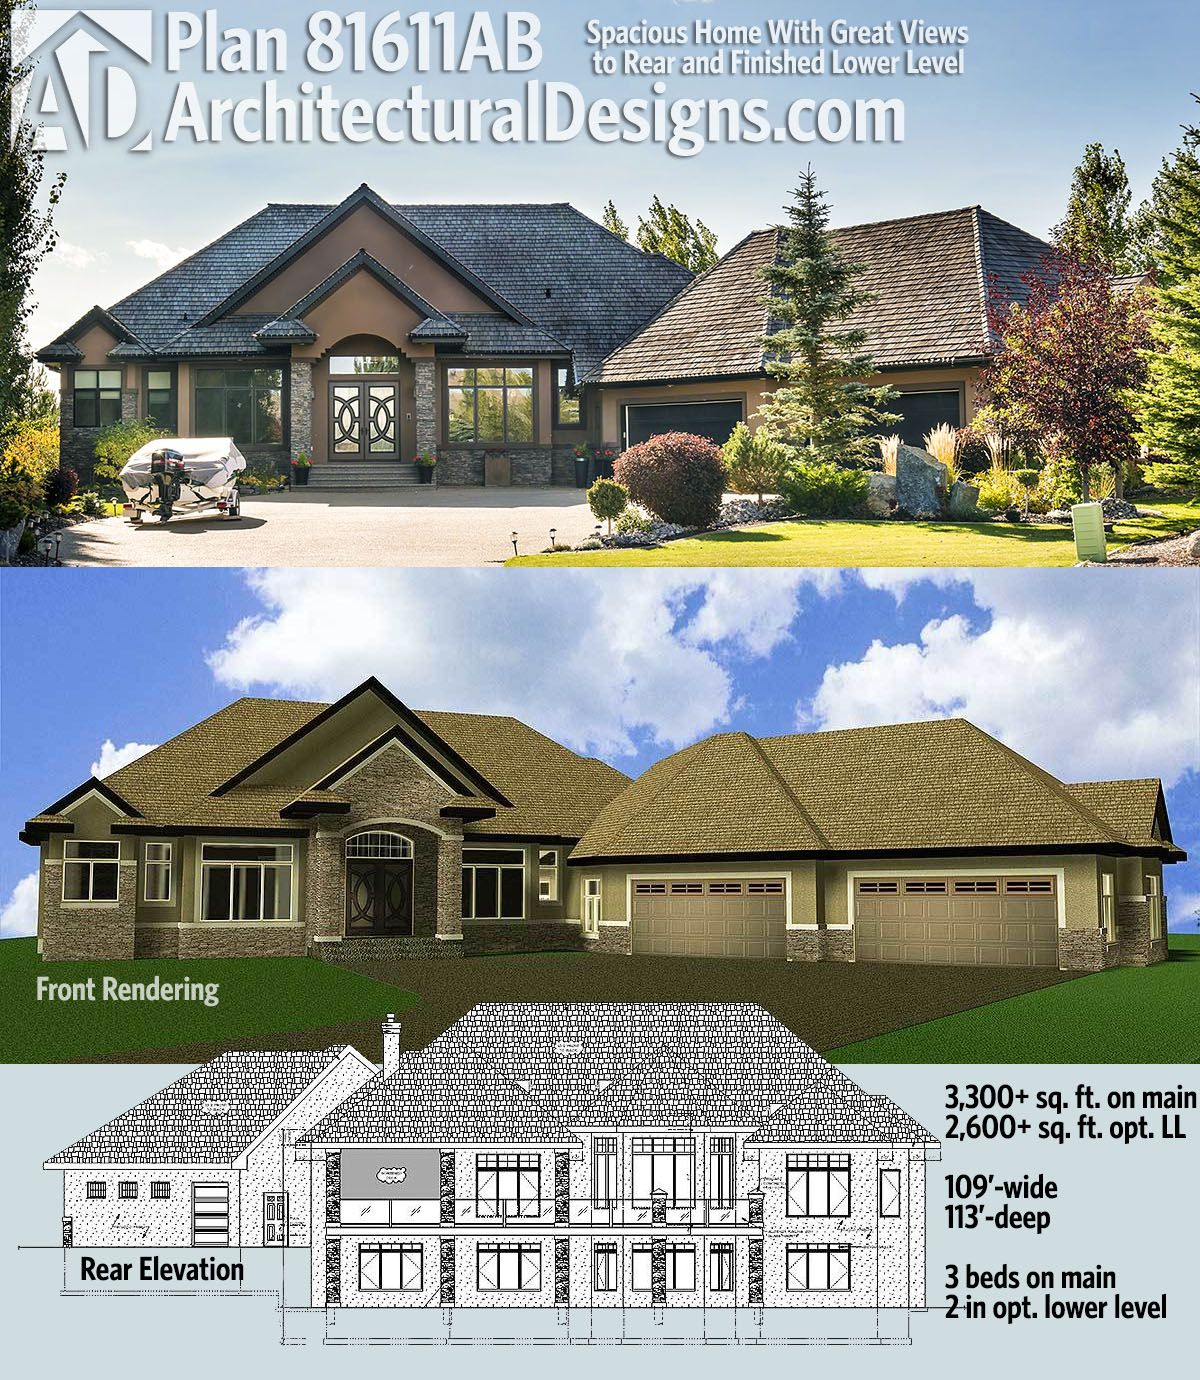 Architectural Designs House Plan 81611AB is designed